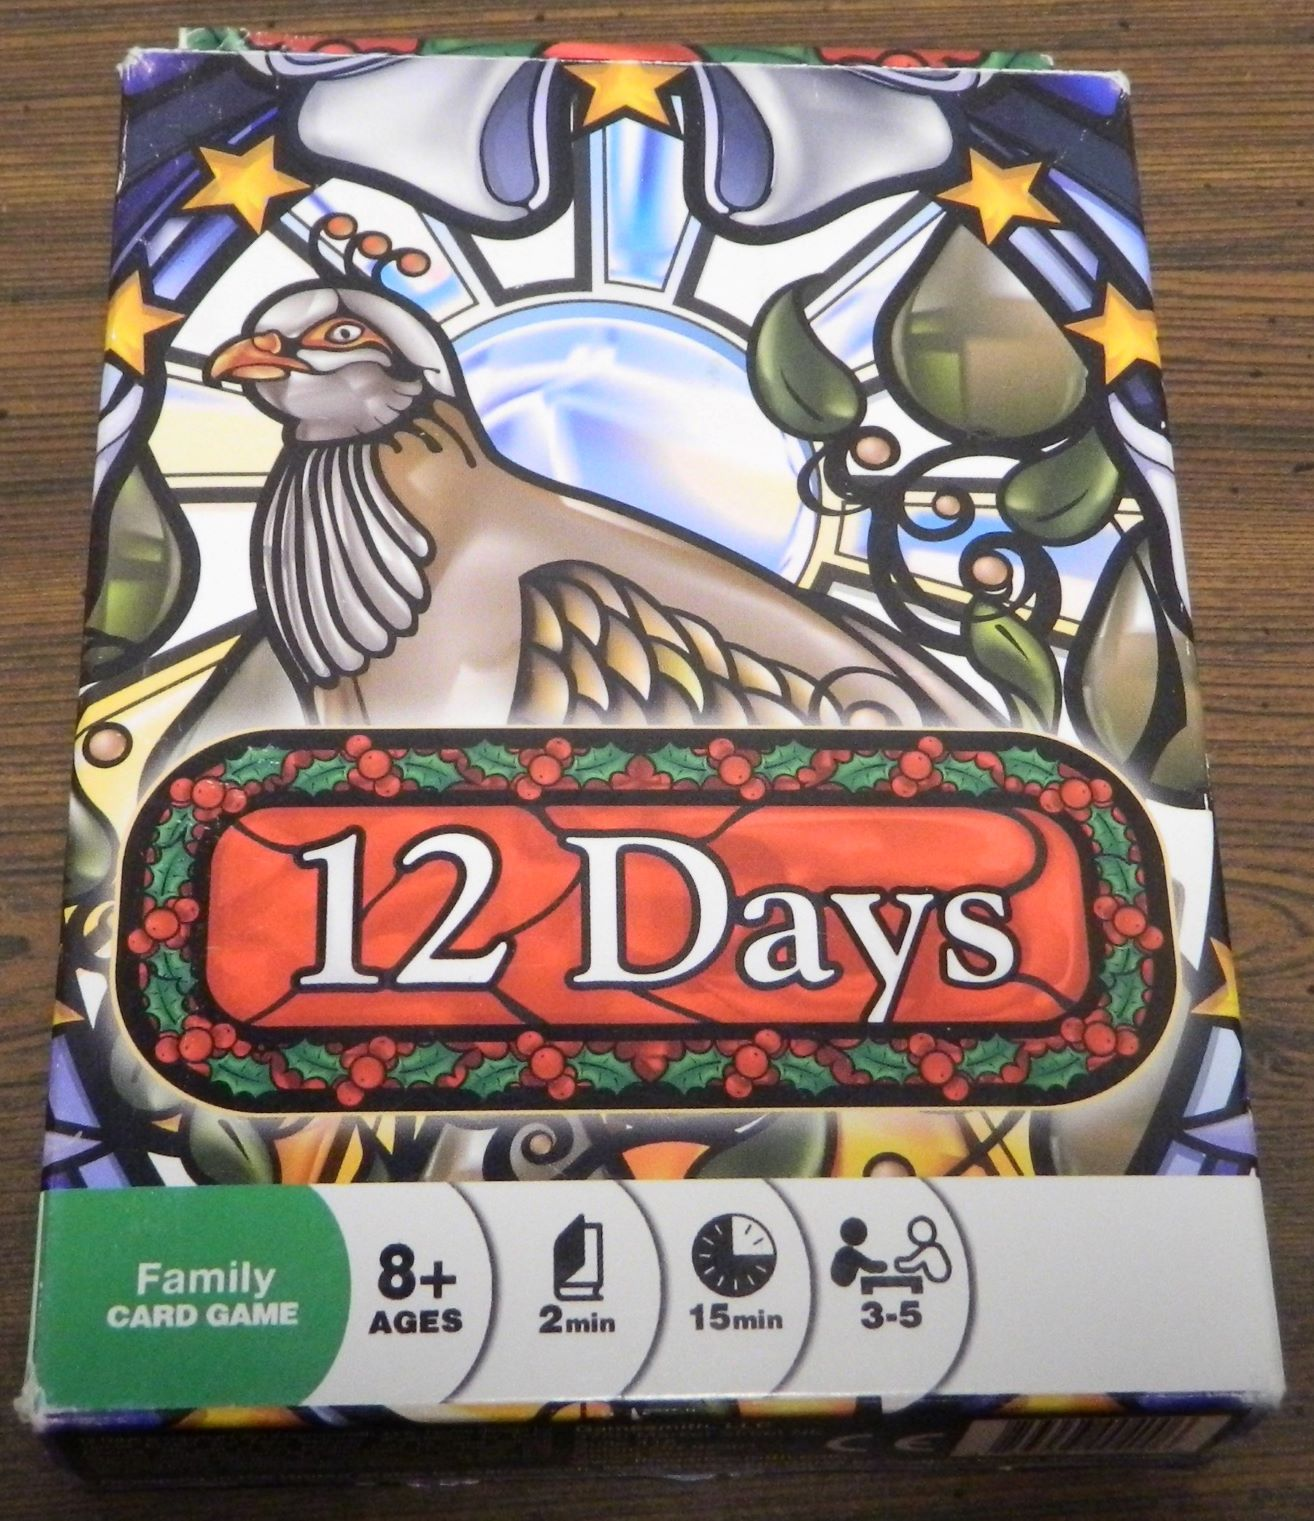 Box for 12 Days